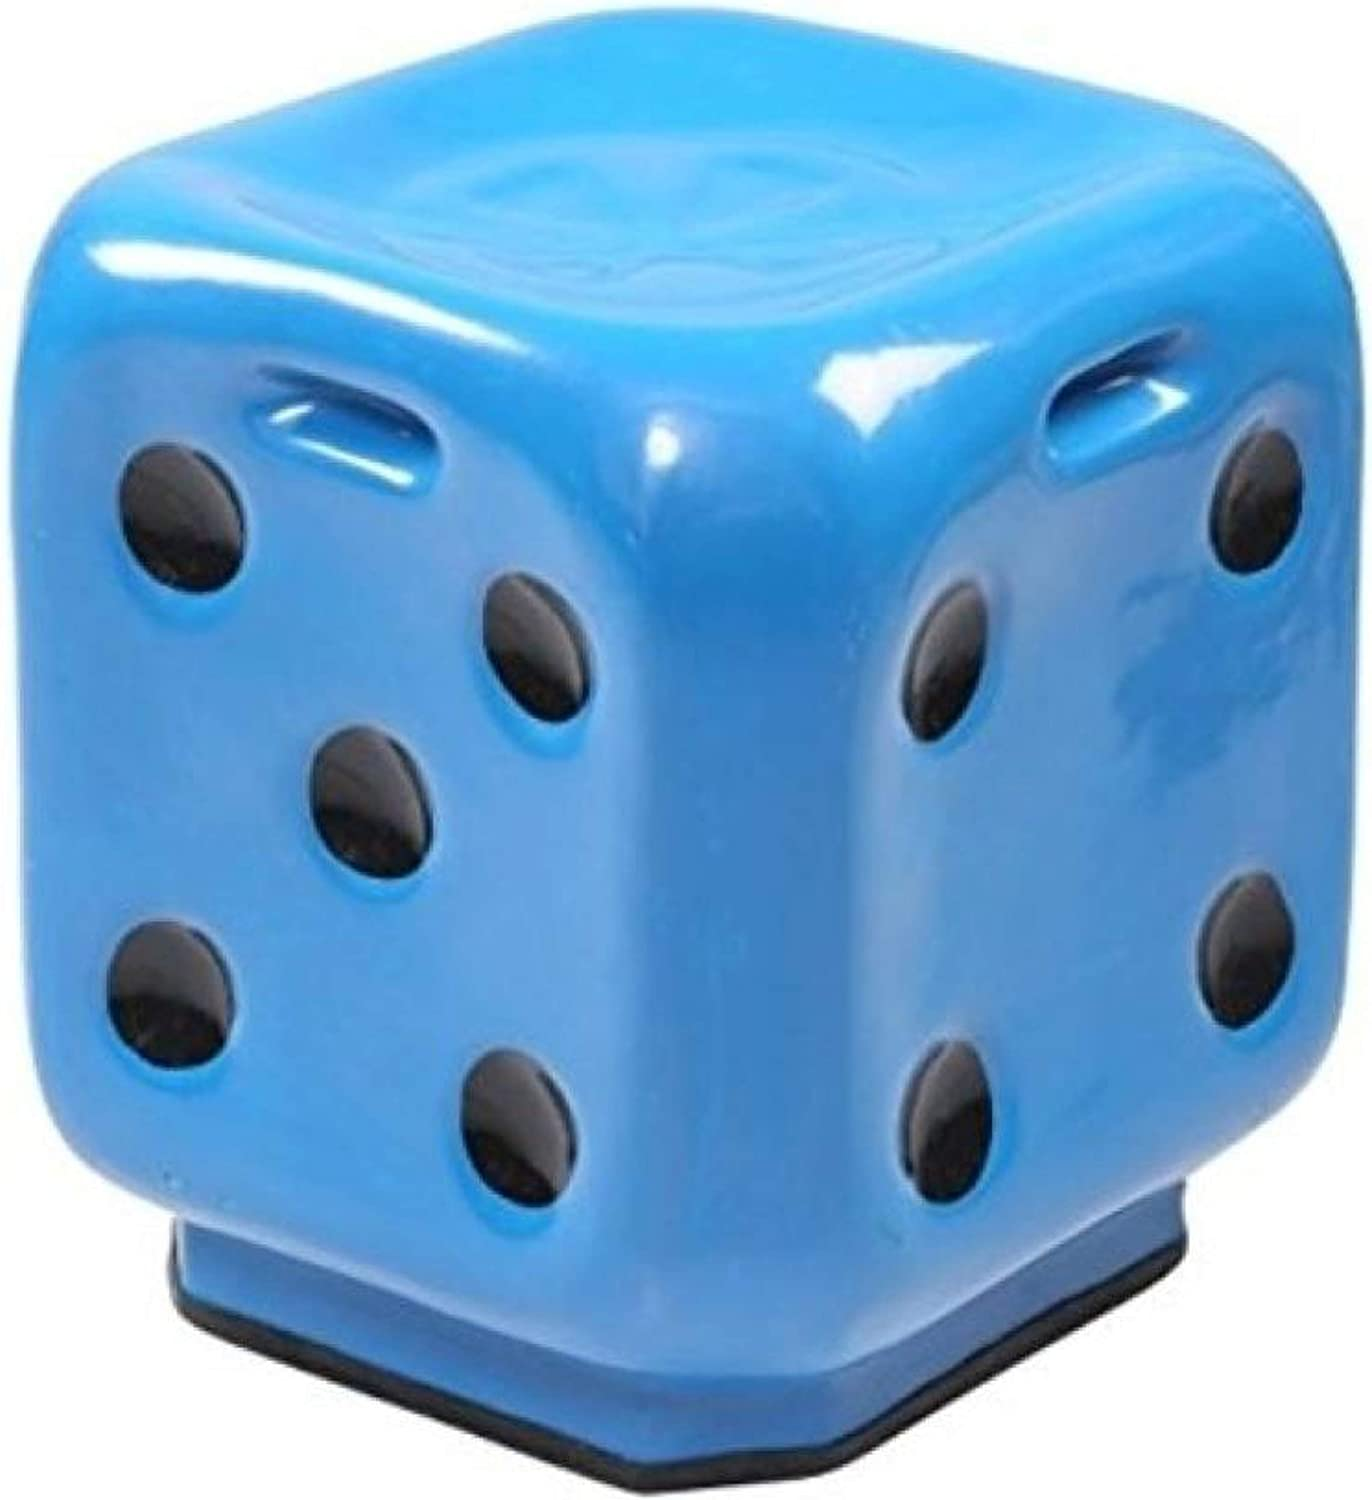 Stool DICE Bule Premium Fiber Material Unbreakable Durable Dice Sitting Stool (Fiber) for Living Room Home Office Outdoor Stool with Anti-Skid Rubber  Stool with Sturdy Compact and Stylish.